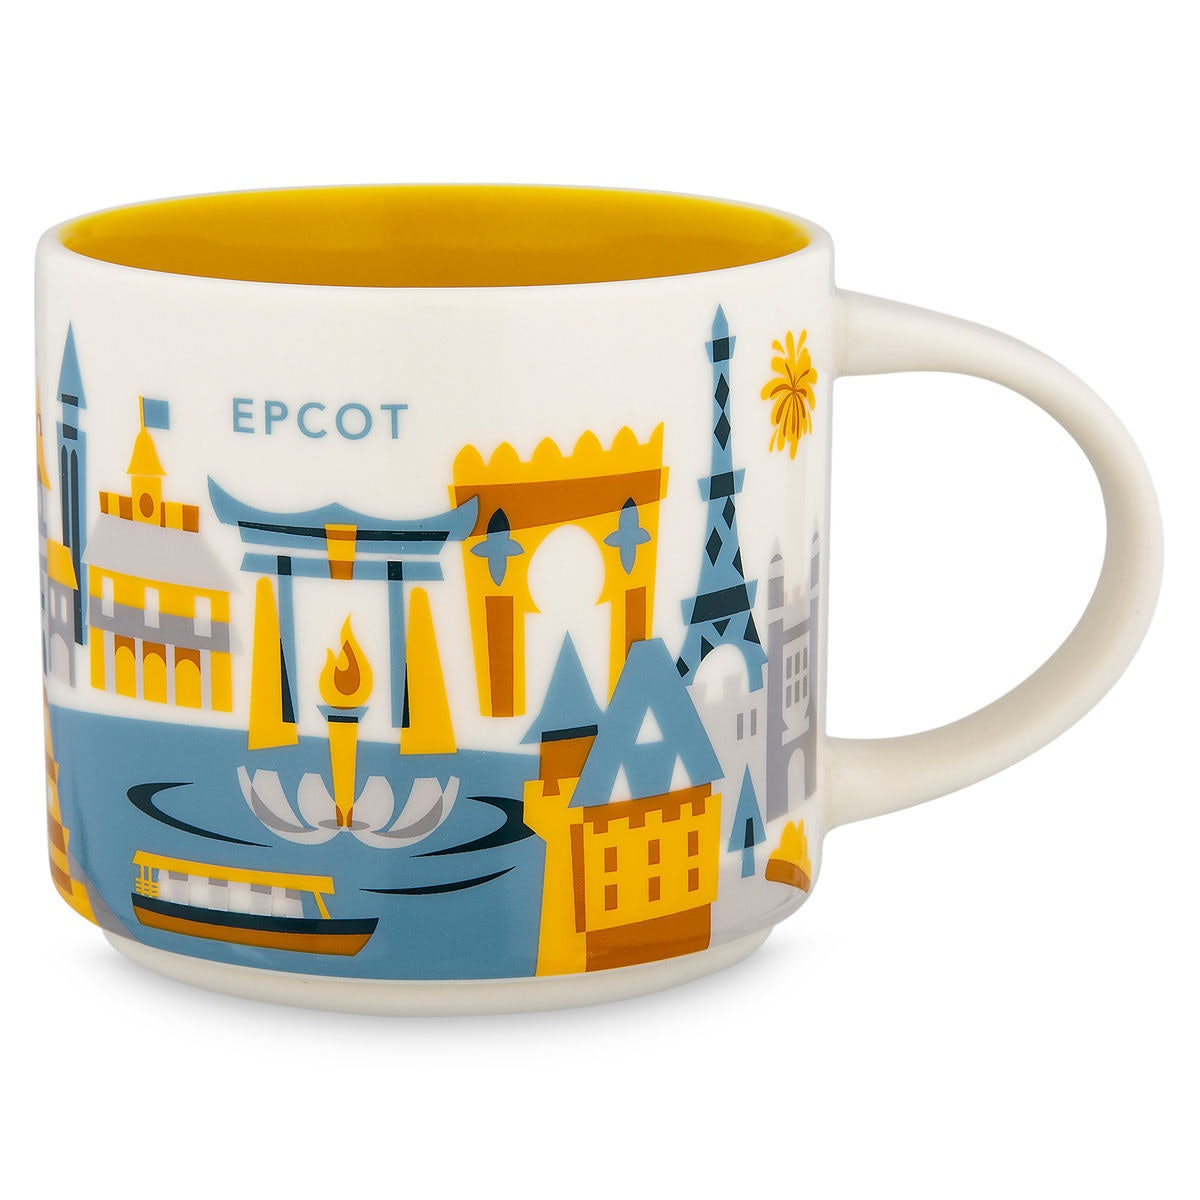 Disney S Starbucks Mugs Are Available To Purchase On